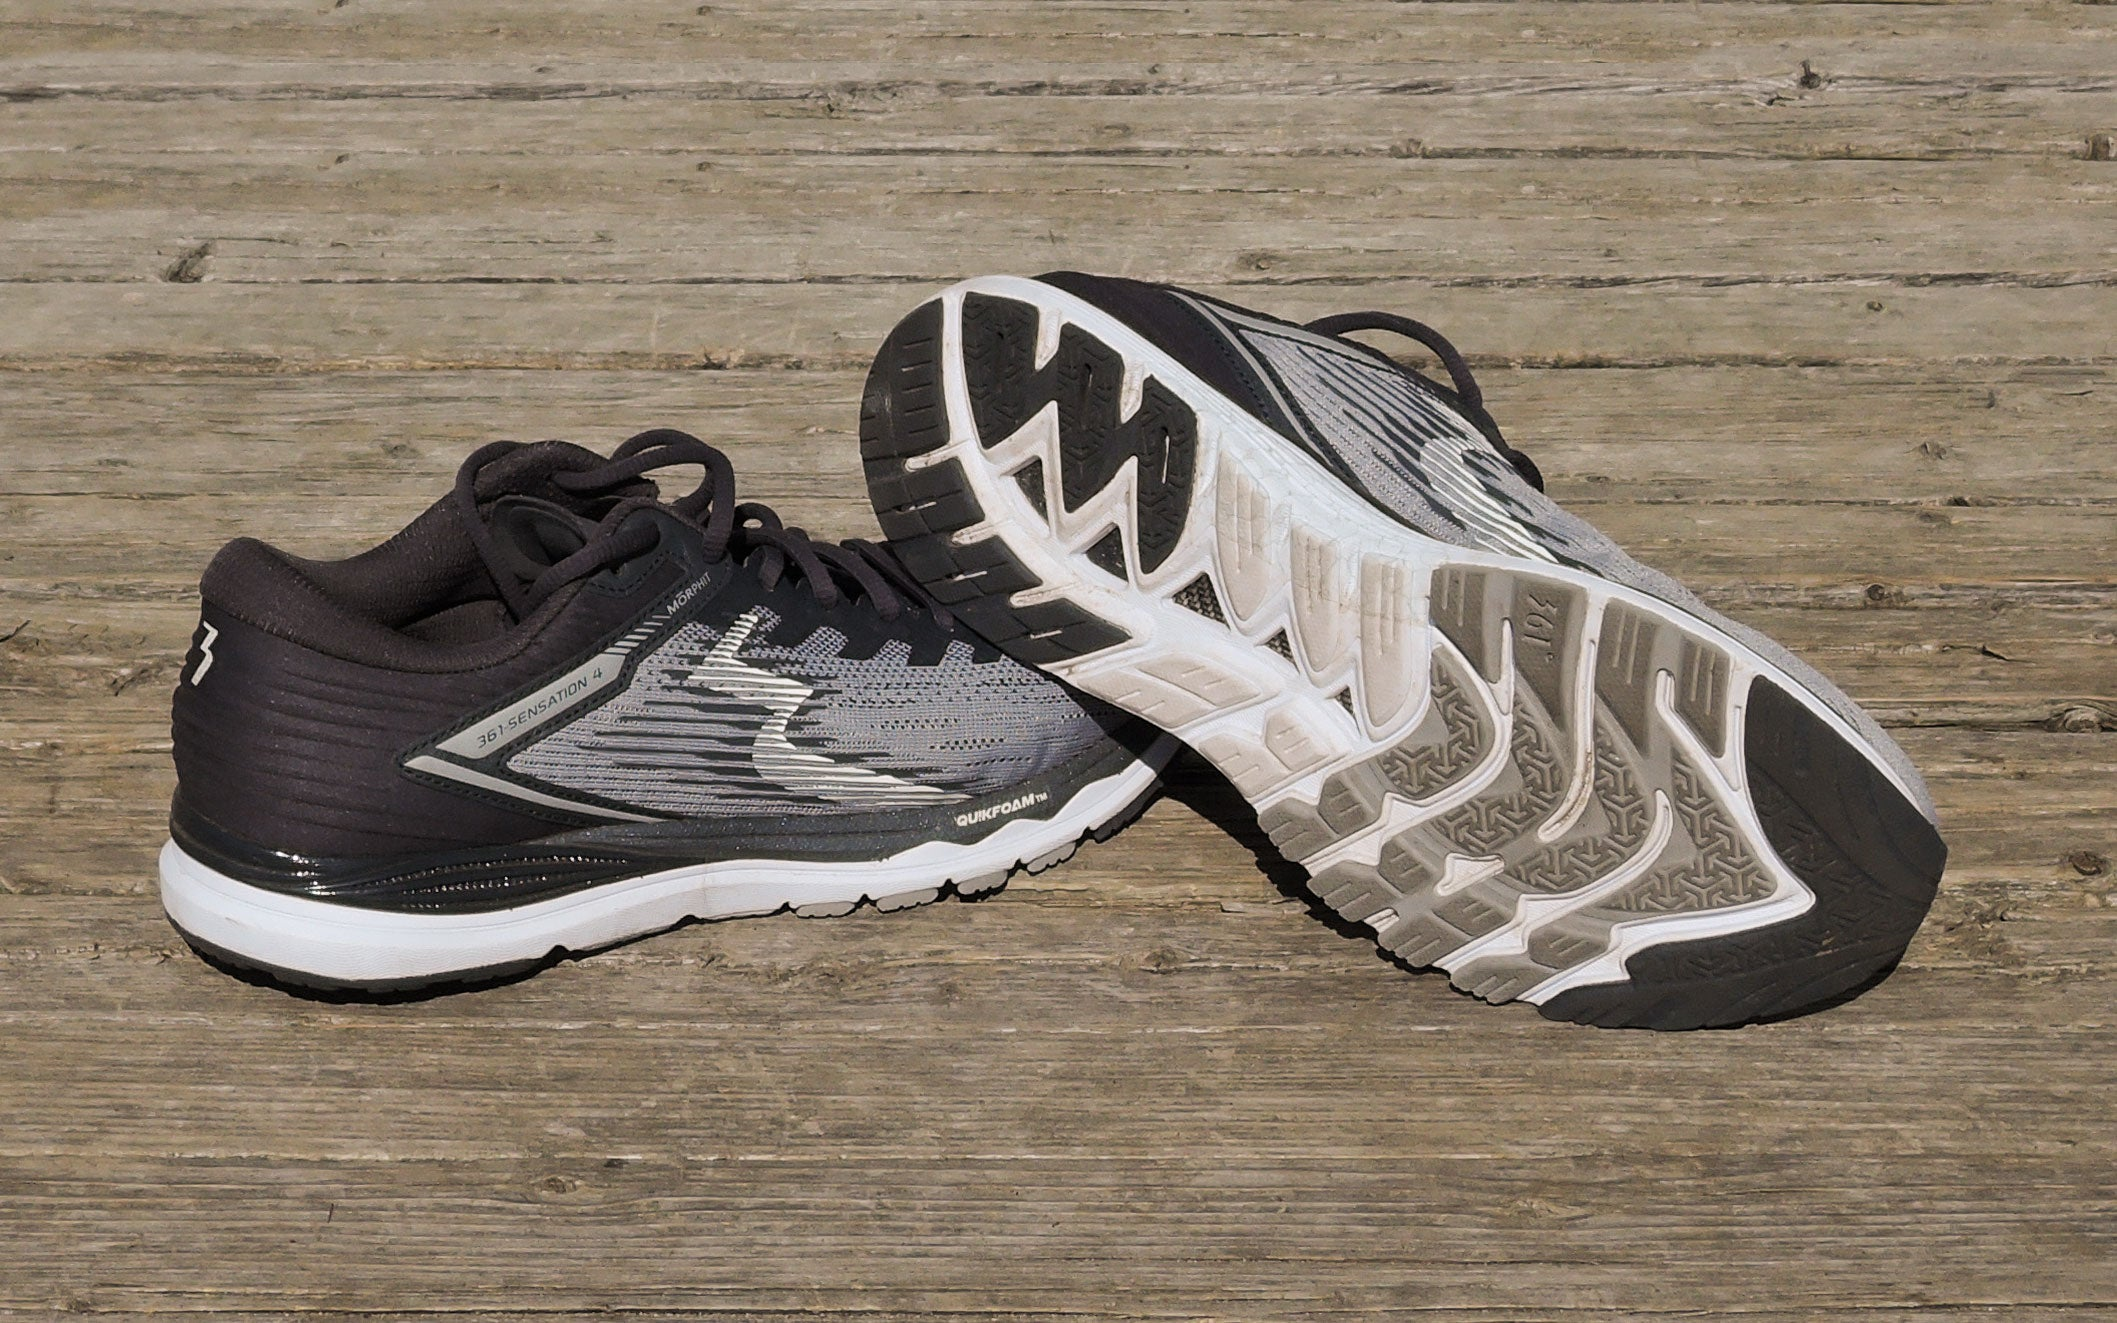 361 Fantom Trail Running Shoes In Black and White